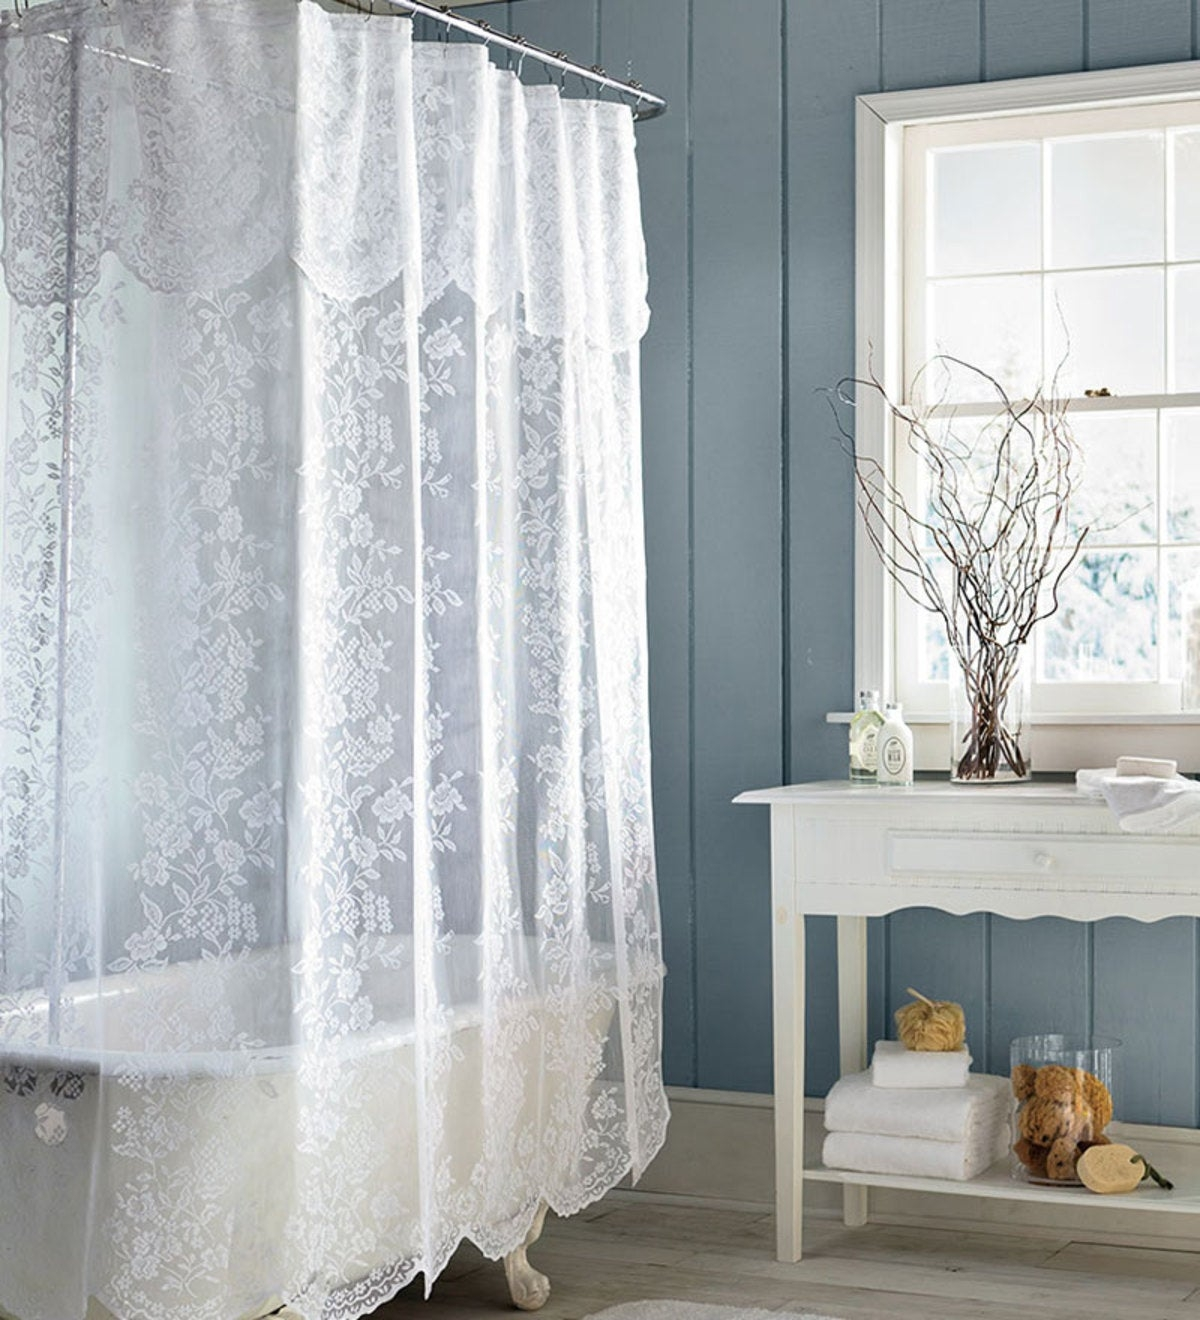 Lace Shower Curtain - Foter